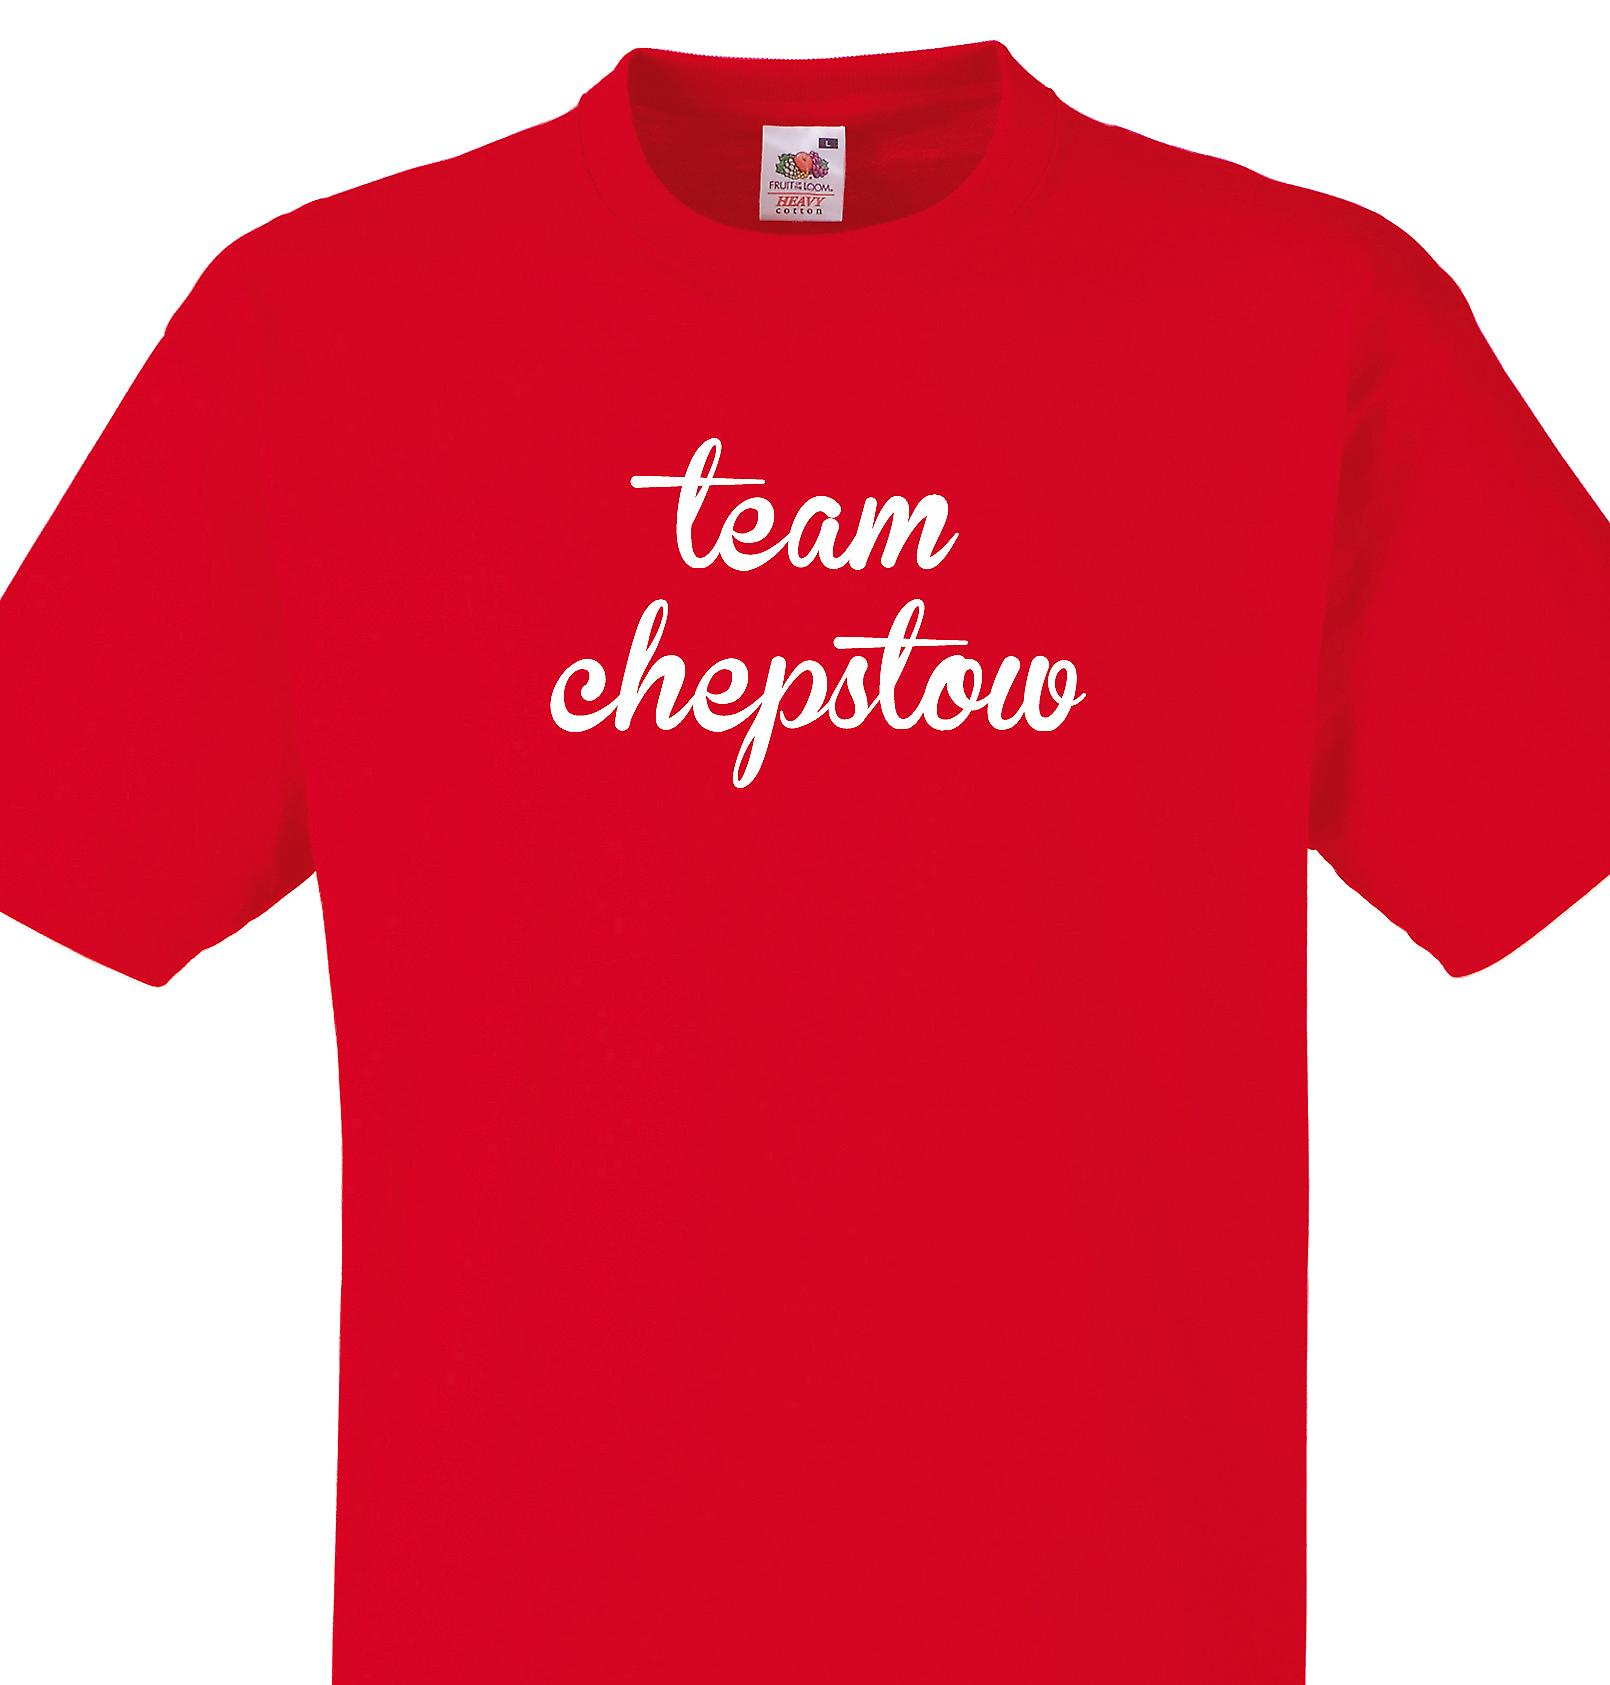 Team Chepstow Red T shirt